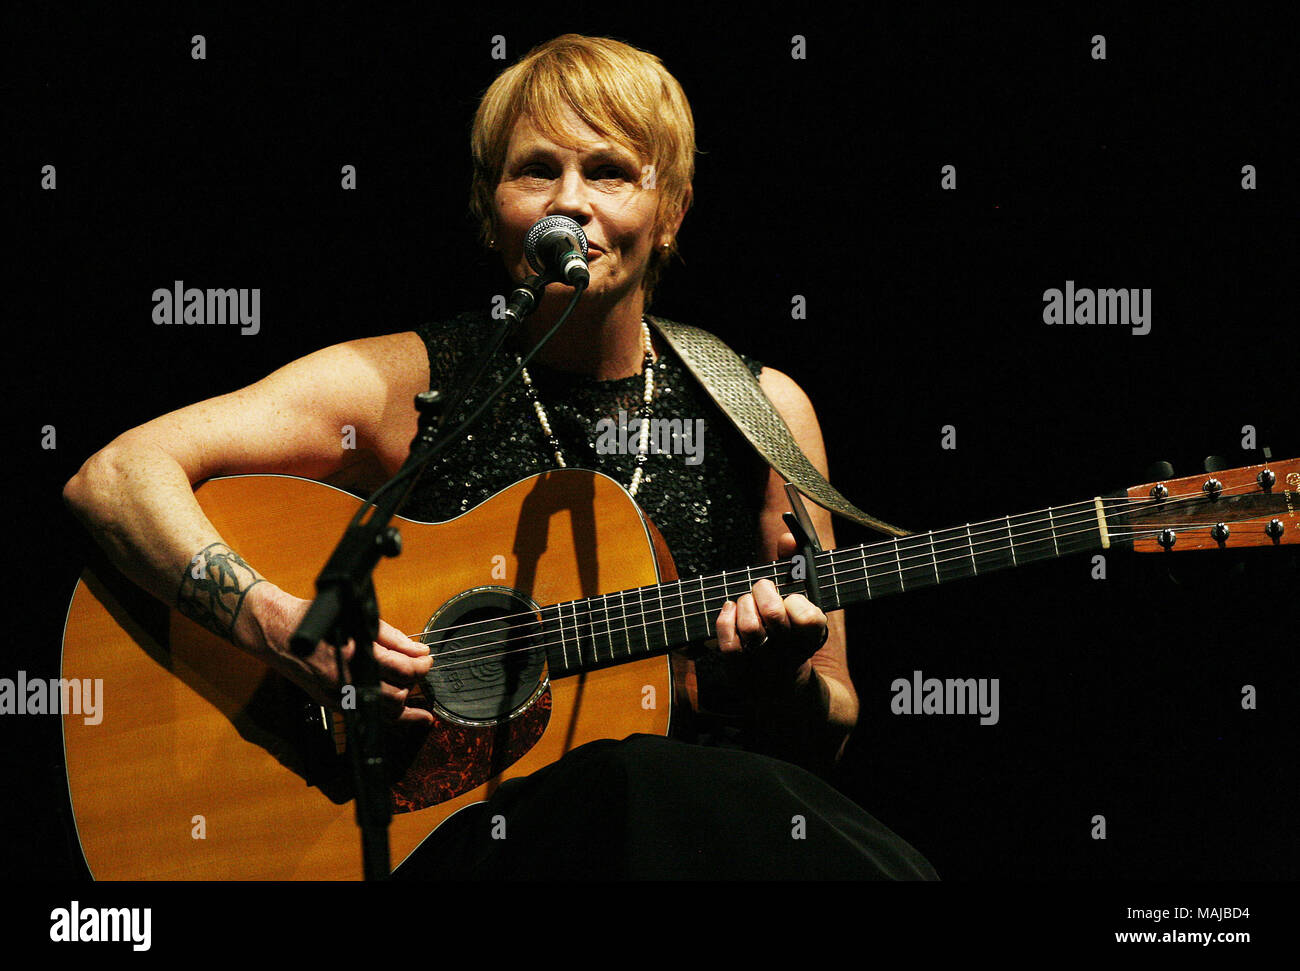 Folk Singers Lyle Lovett and Shawn Colvin performing live at the Parx Casino in Bensalem  Featuring: Shawn Colvin Where: Bensalem, Pennsylvania, United States When: 01 Mar 2018 Credit: W.Wade/WENN - Stock Image